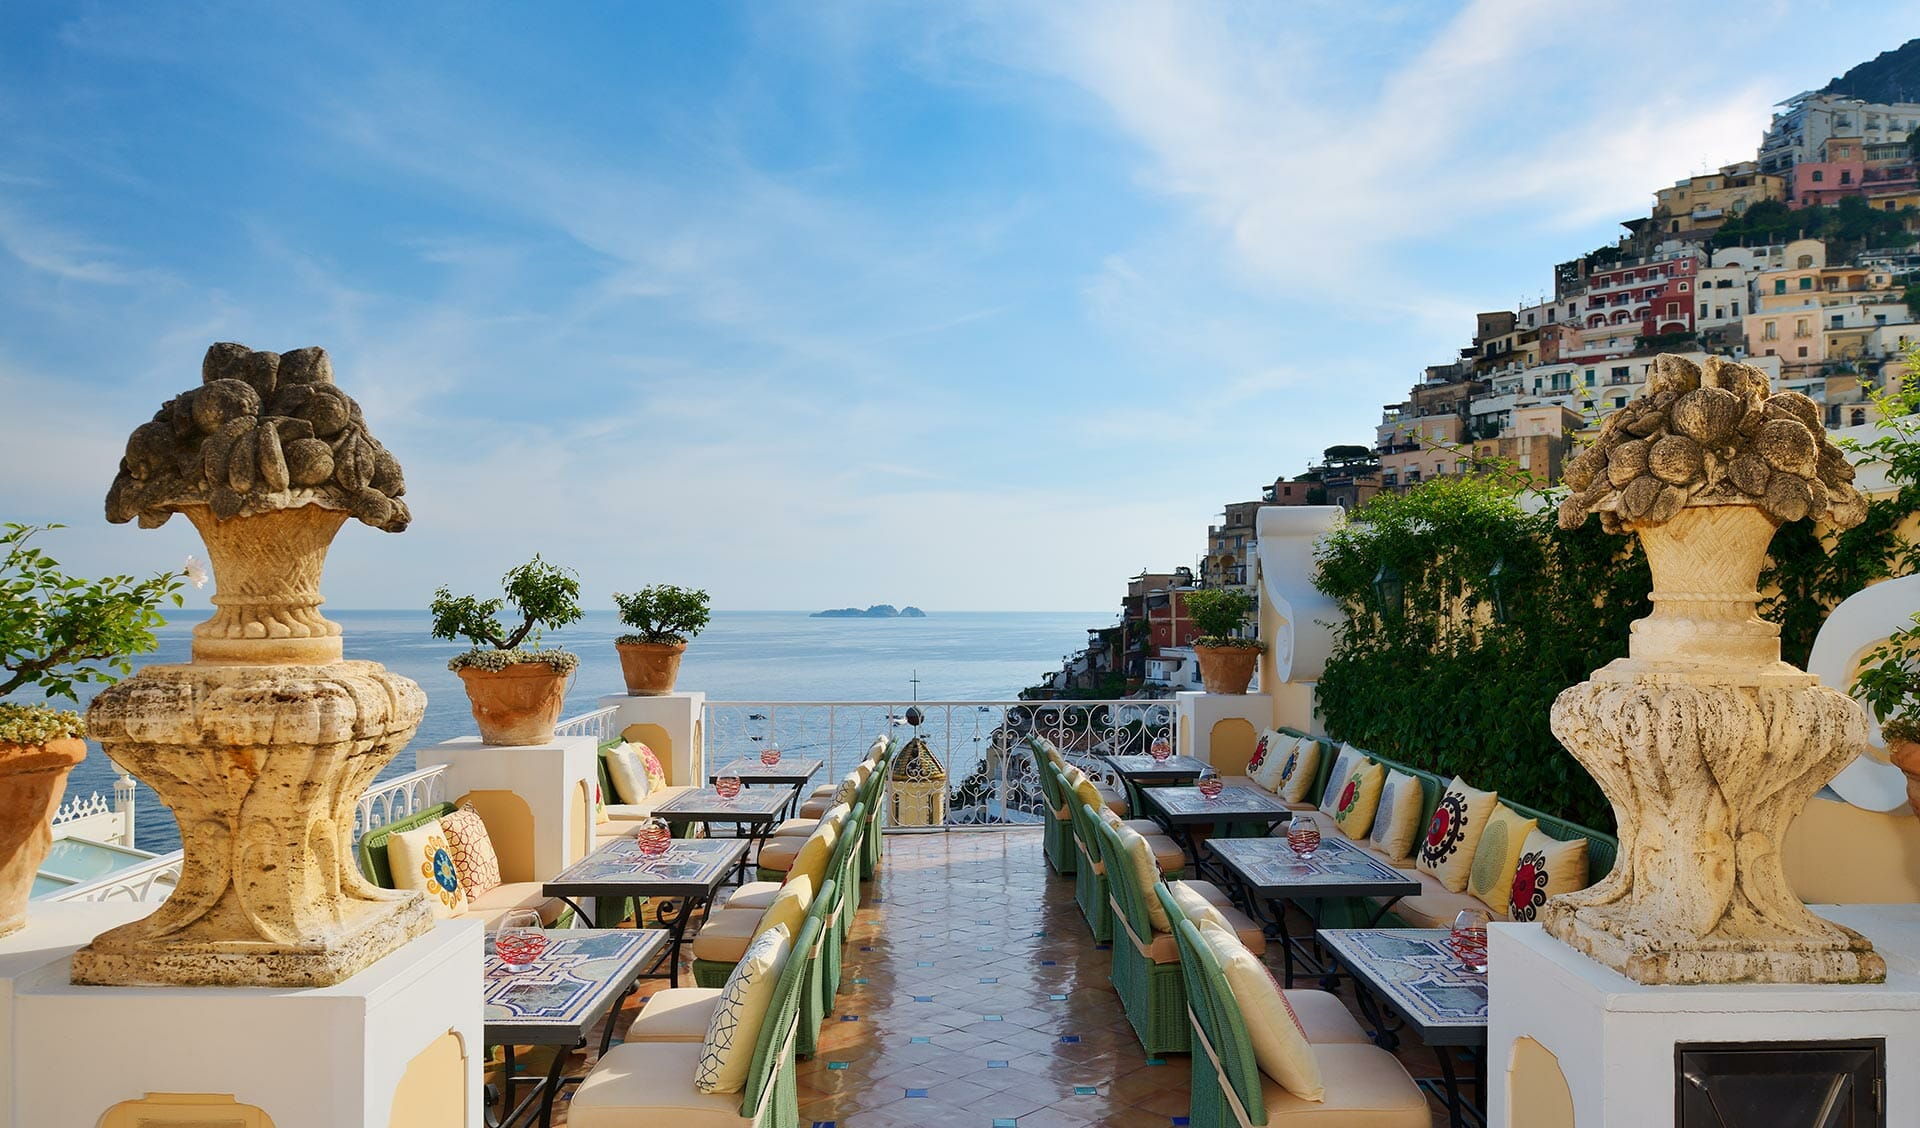 sirenuse hotel main luxury hotel positano lesirenuse 05 new